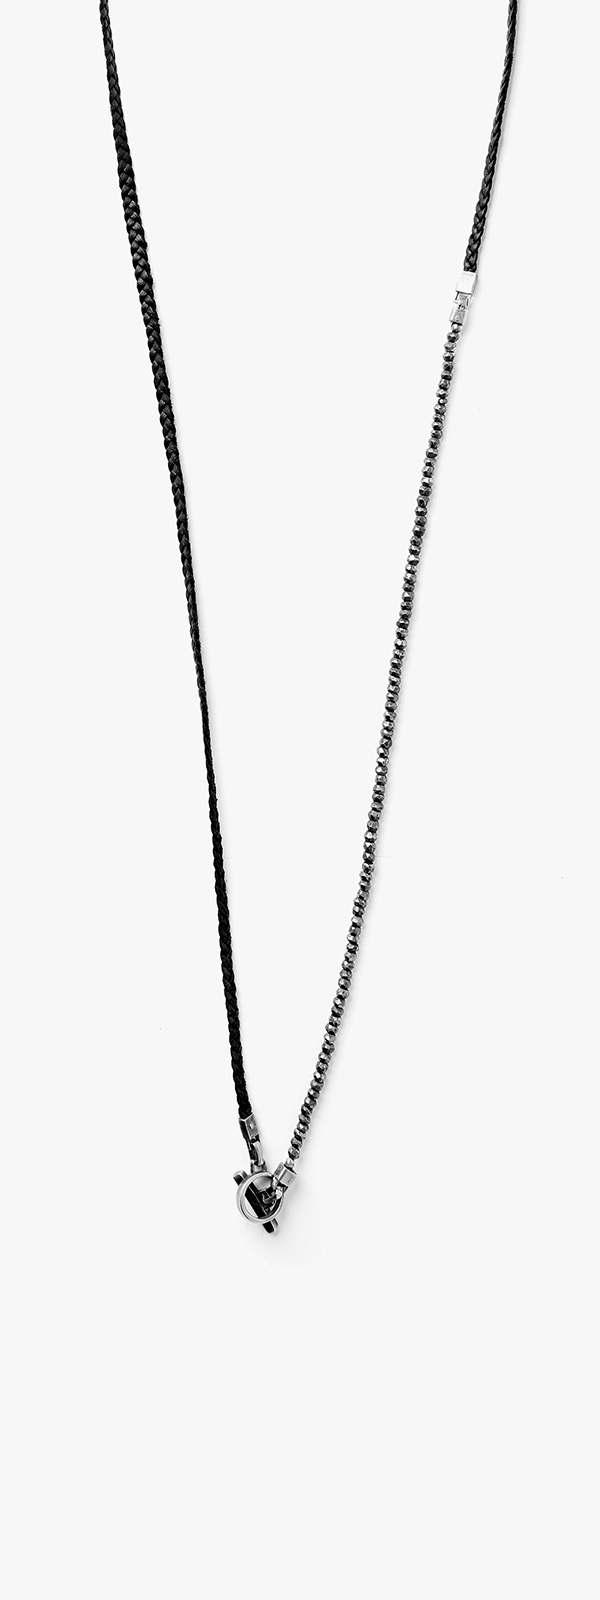 Image of Pyrite Beads to Leather Braid Necklace 070